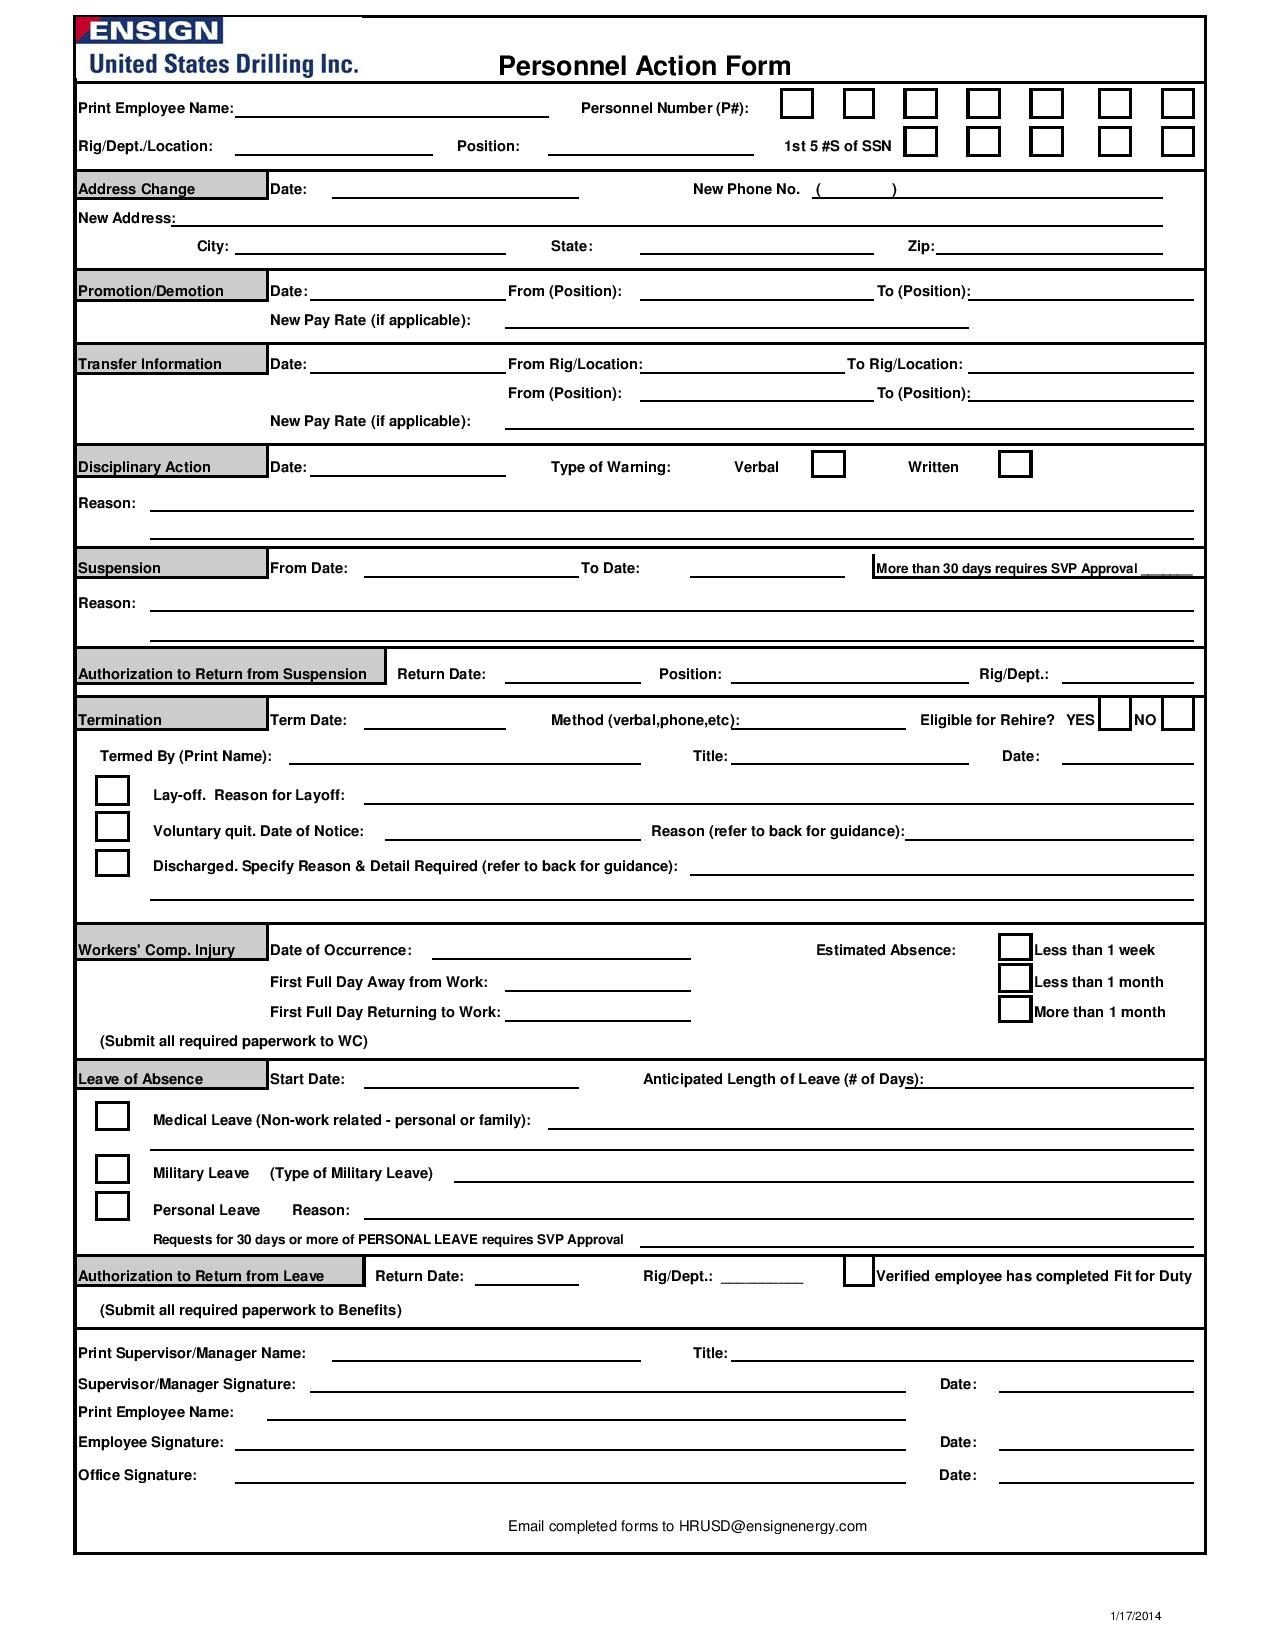 employee personnel action form page 0011